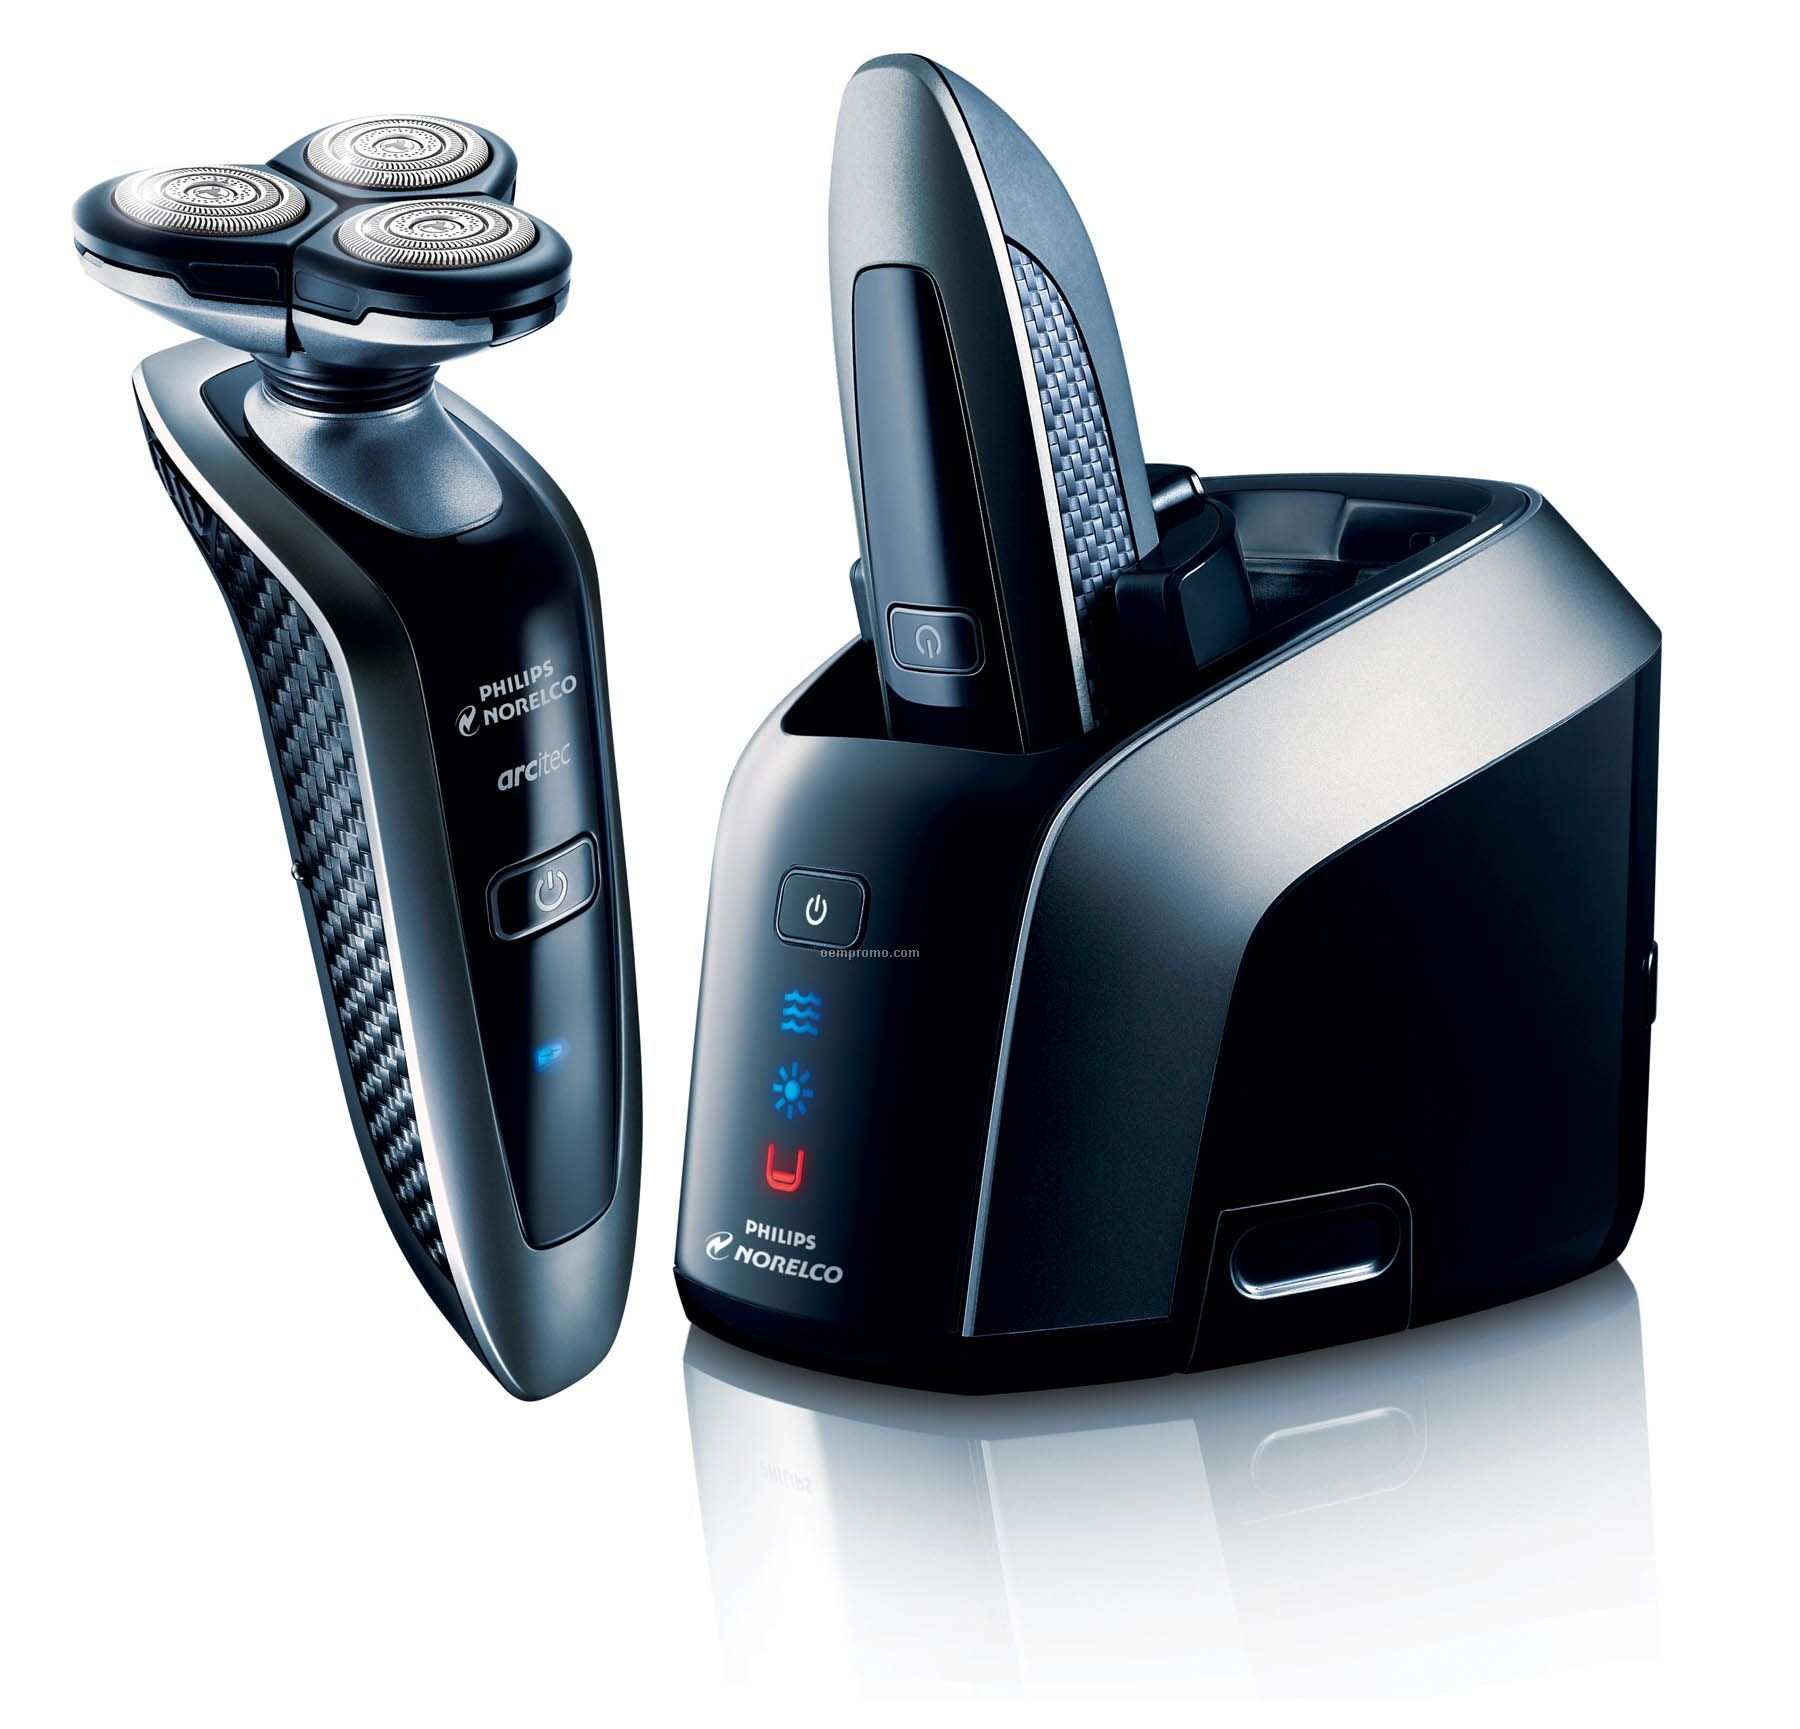 Philips Norelco Cordless Arcitec Jet Clean Shaving System